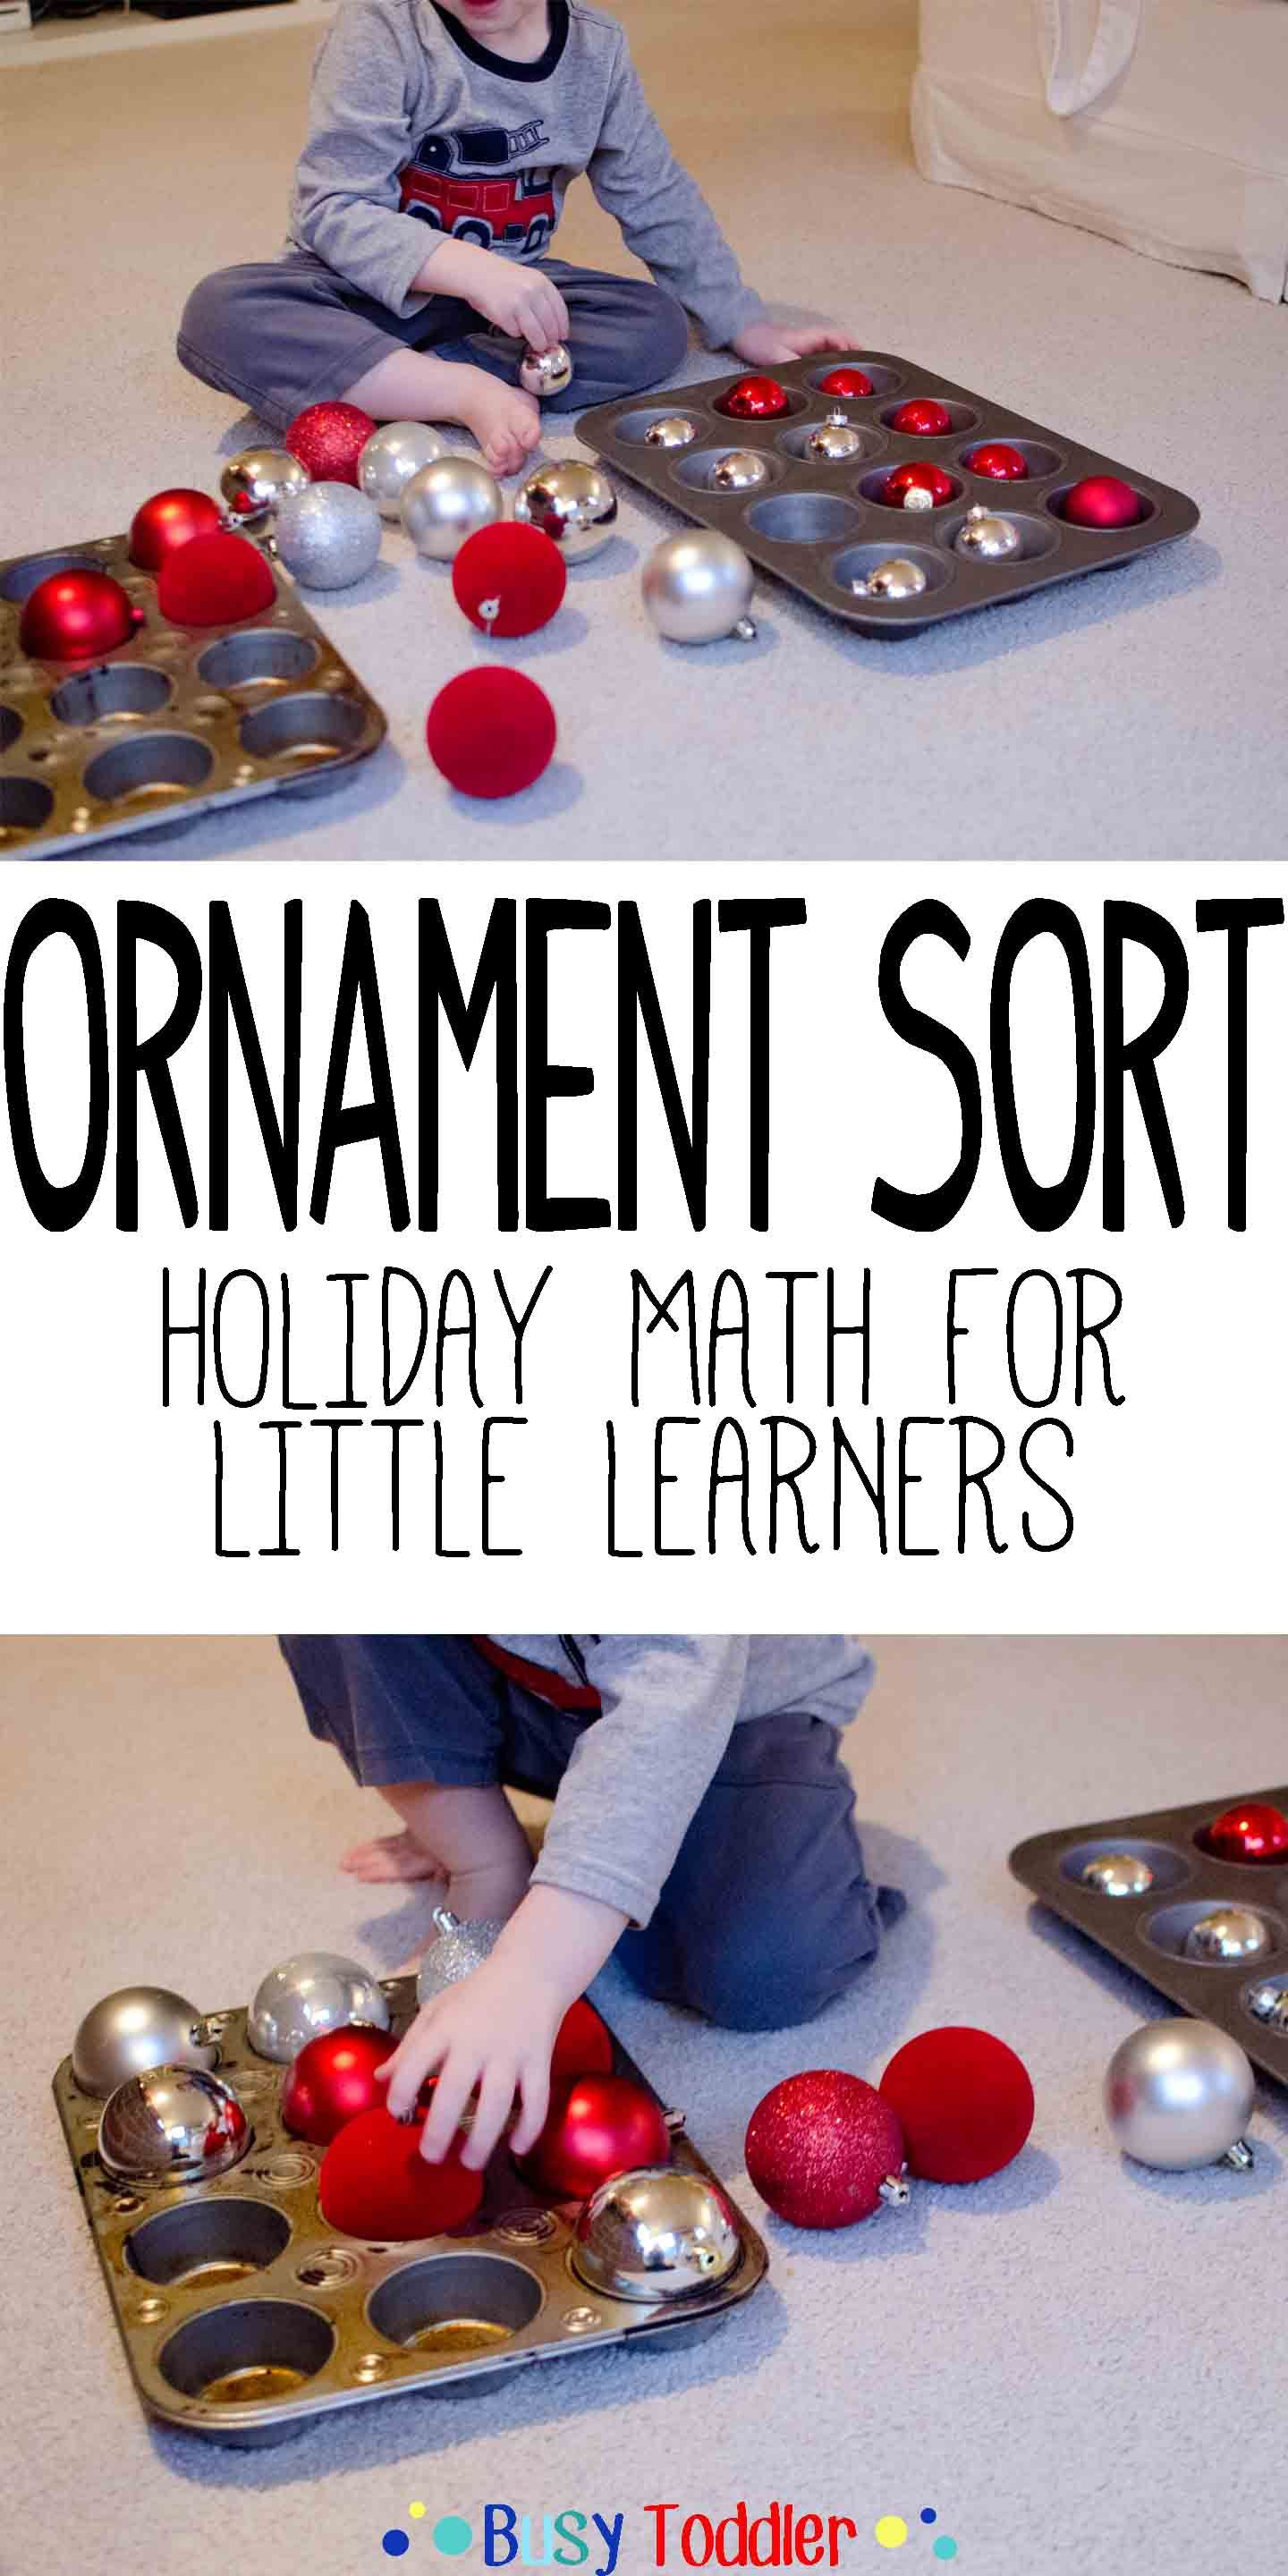 Ornament Sorting Holiday Math For Little Learners